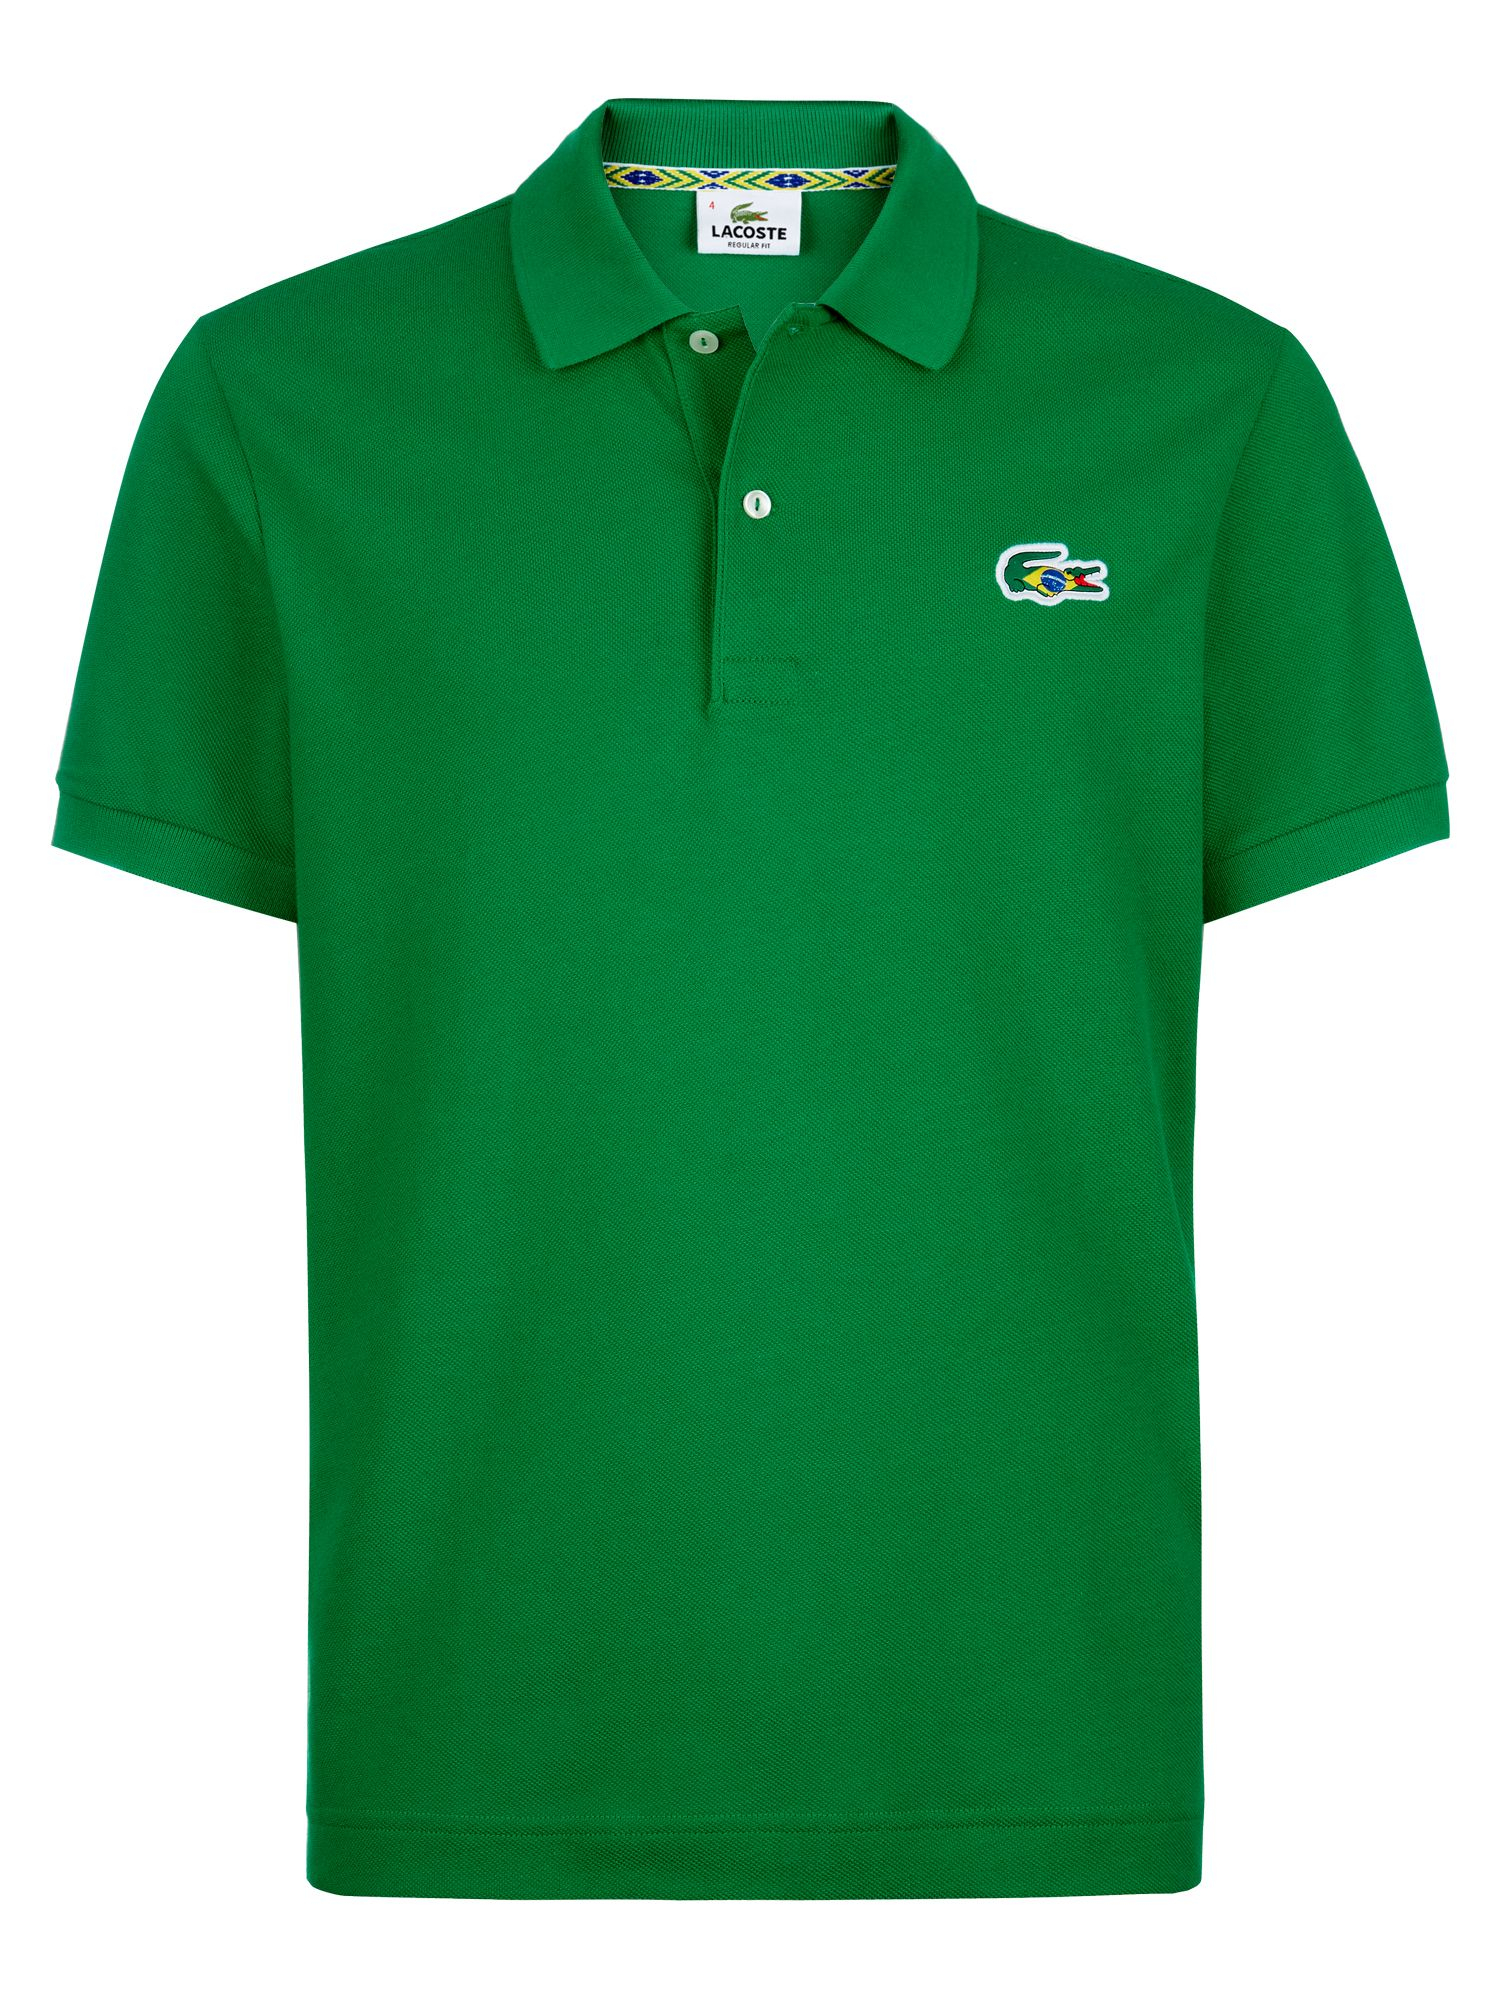 Lacoste brazil themed polo shirt in green for men lyst for Boys lacoste polo shirt